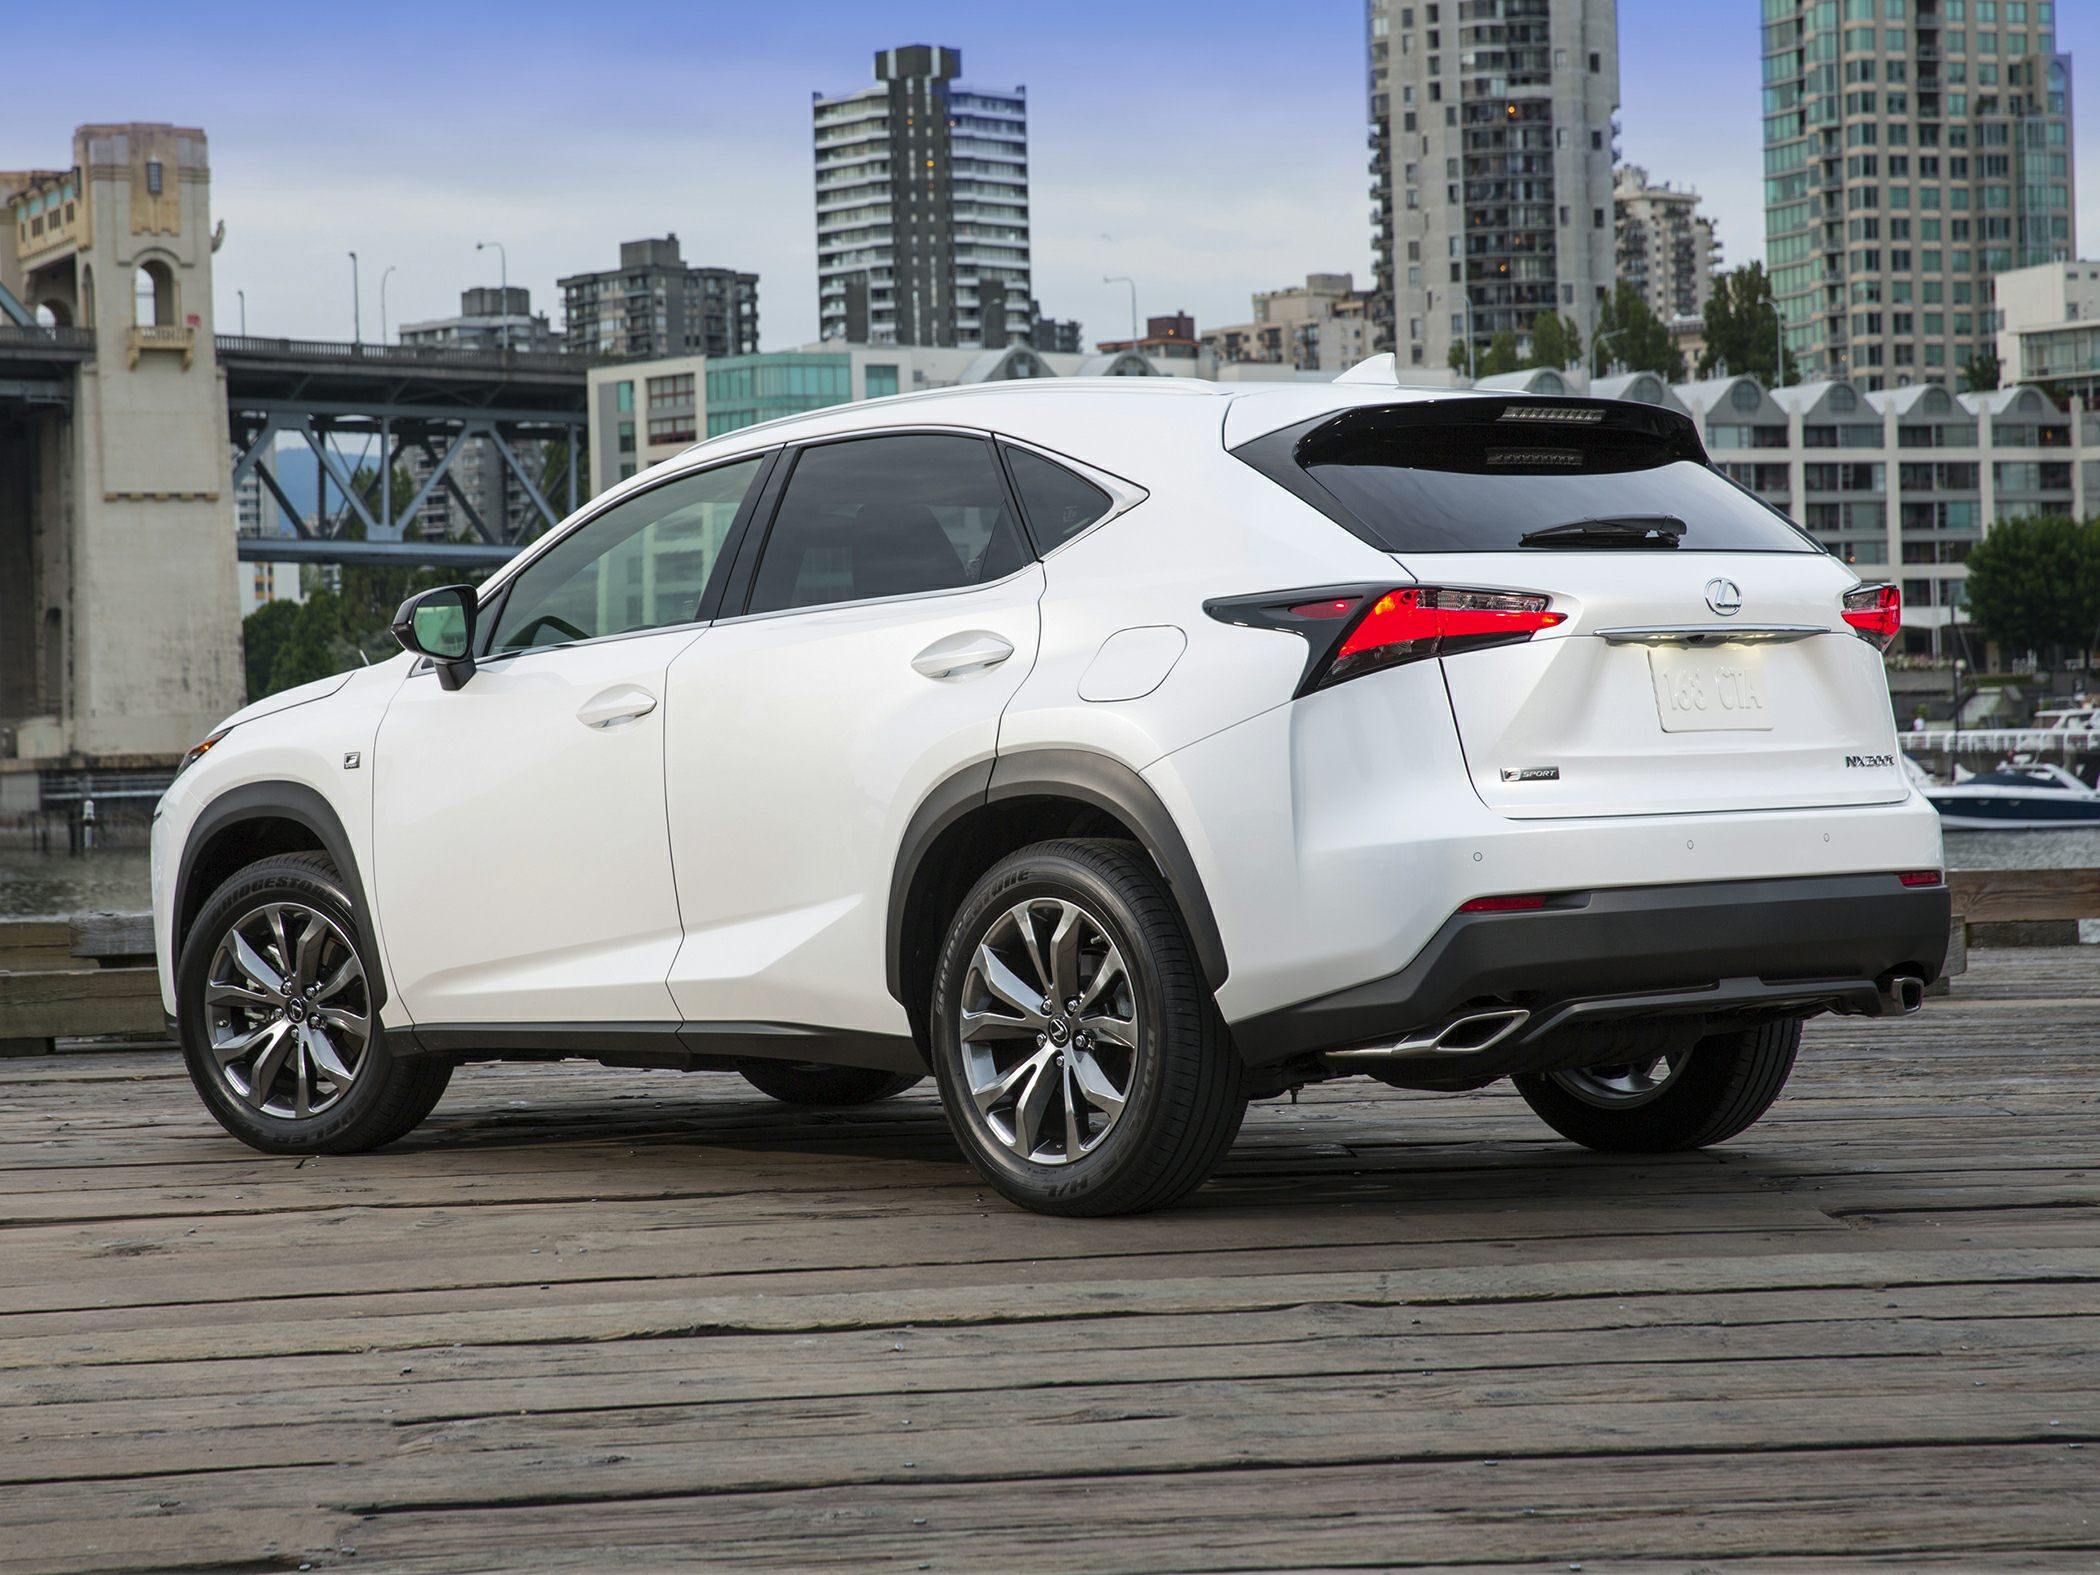 2017 lexus nx 200t deals prices incentives leases overview carsdirect. Black Bedroom Furniture Sets. Home Design Ideas